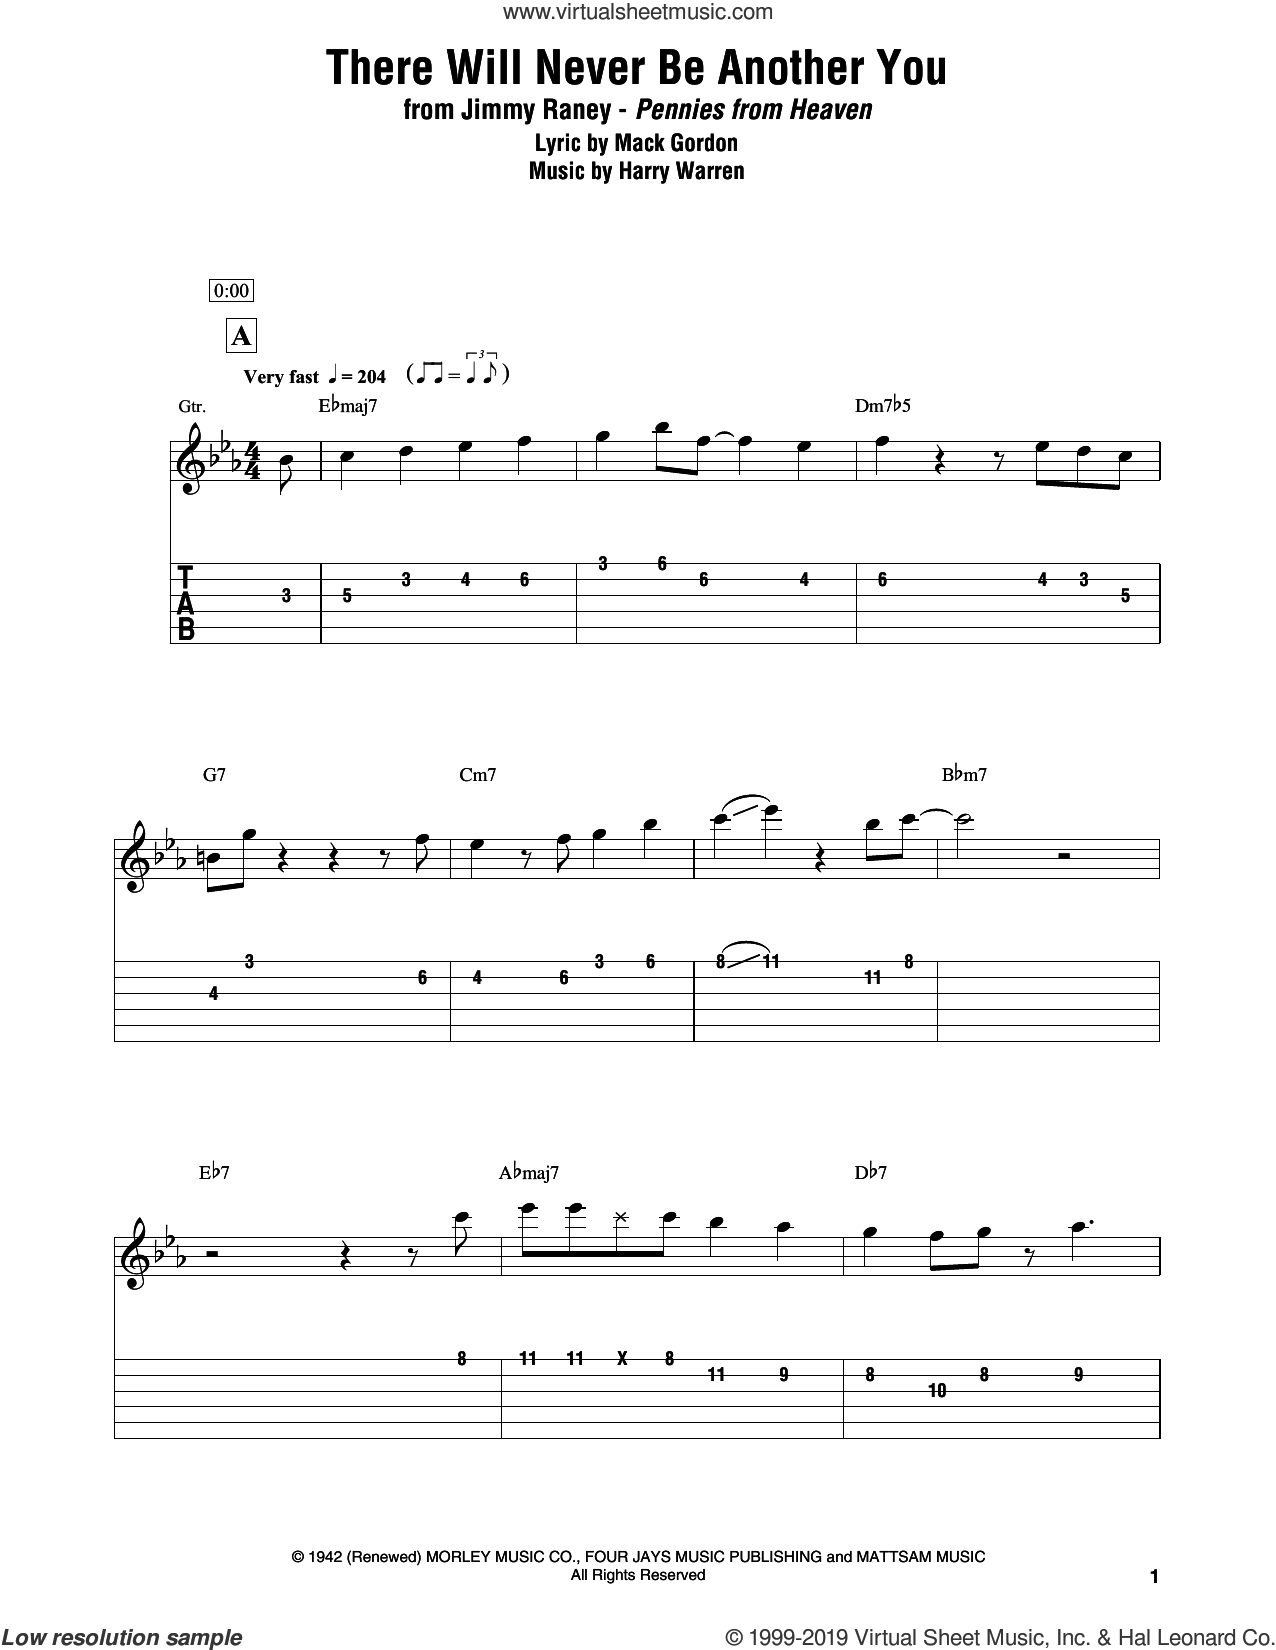 There Will Never Be Another You sheet music for electric guitar (transcription) by Jimmy Raney, Harry Warren and Mack Gordon, intermediate skill level